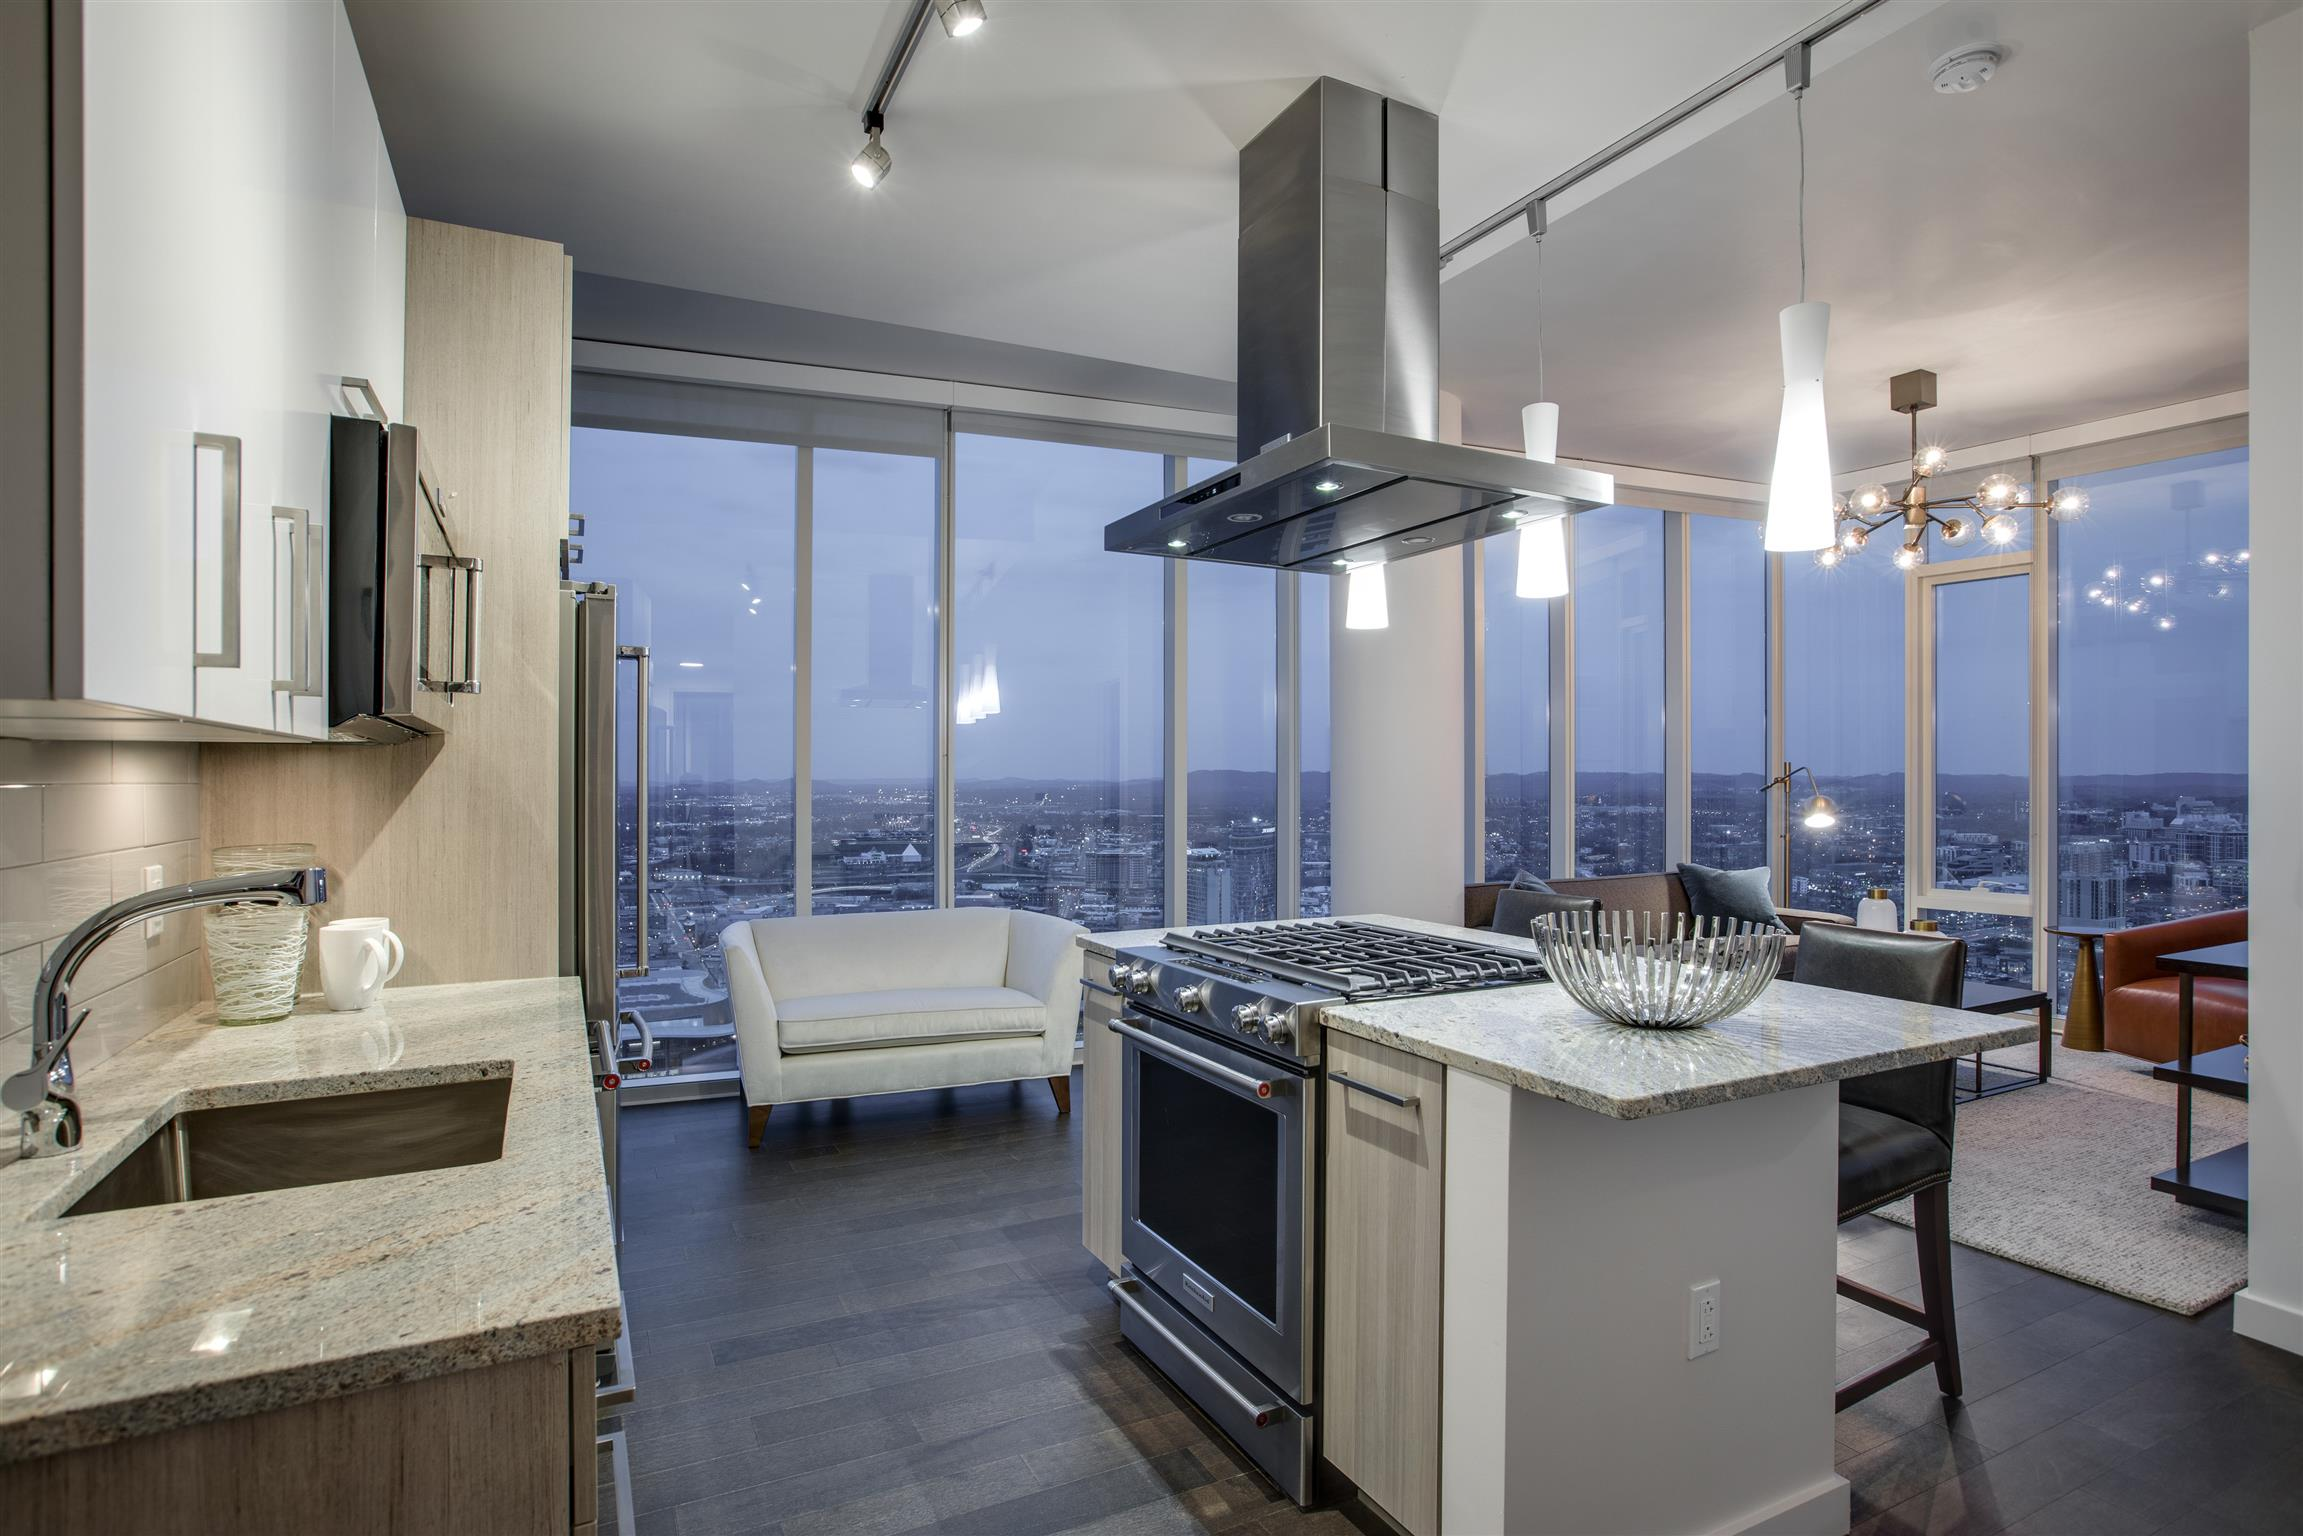 45 floors of unparalleled, urban, high-rise living. 2 amenity floors worthy of Park Ave NYC. Nashville has never had VIEWS like this! Our condo floors begin where all others stop. Walk to all sports venues, cultural attractions, top restaurants & Nashville landmarks. 505 Nashville - life elevated   8 DIFFERENT 2BR PLANS AVAILABLE - Links in Media.